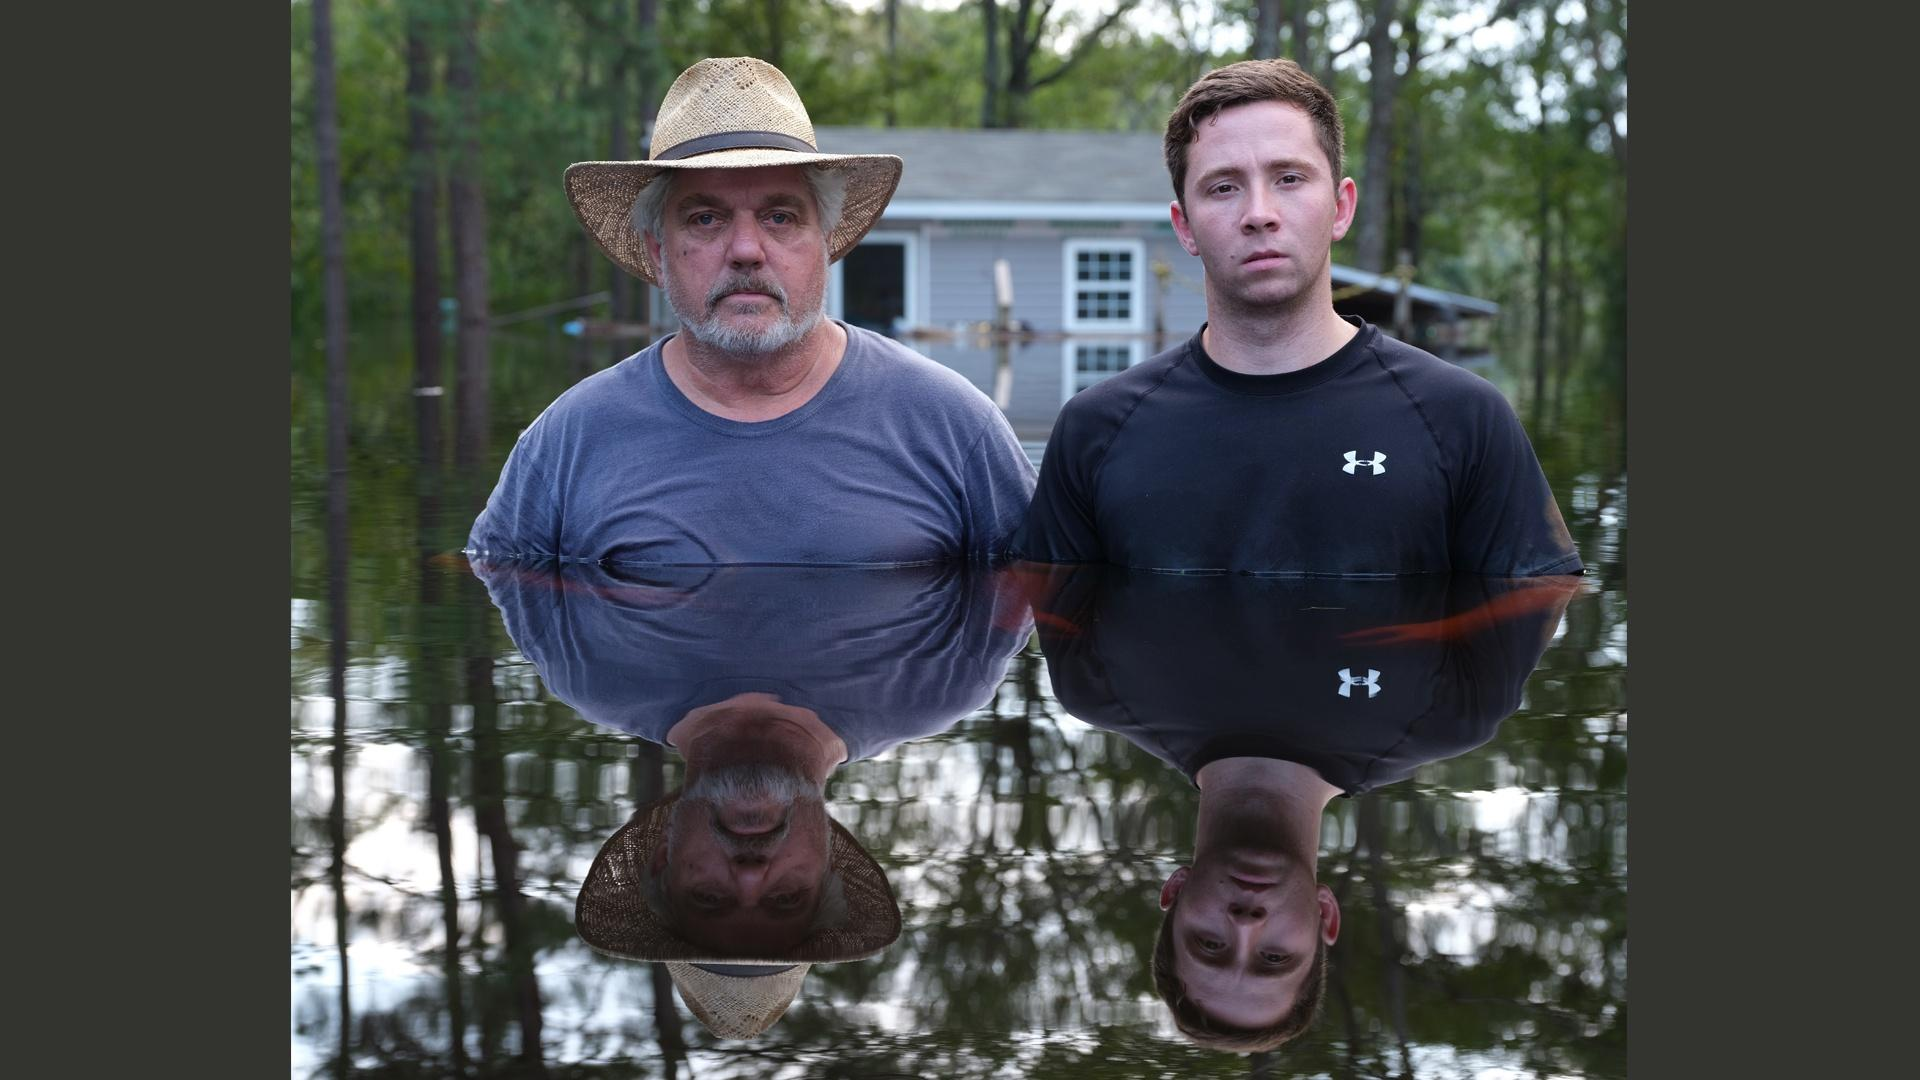 One of Gideon Mendel's photographs from his Drowning World series.  Two men, father and son, stand chest deep in water, after Hurricane Florence hit the Carolinas